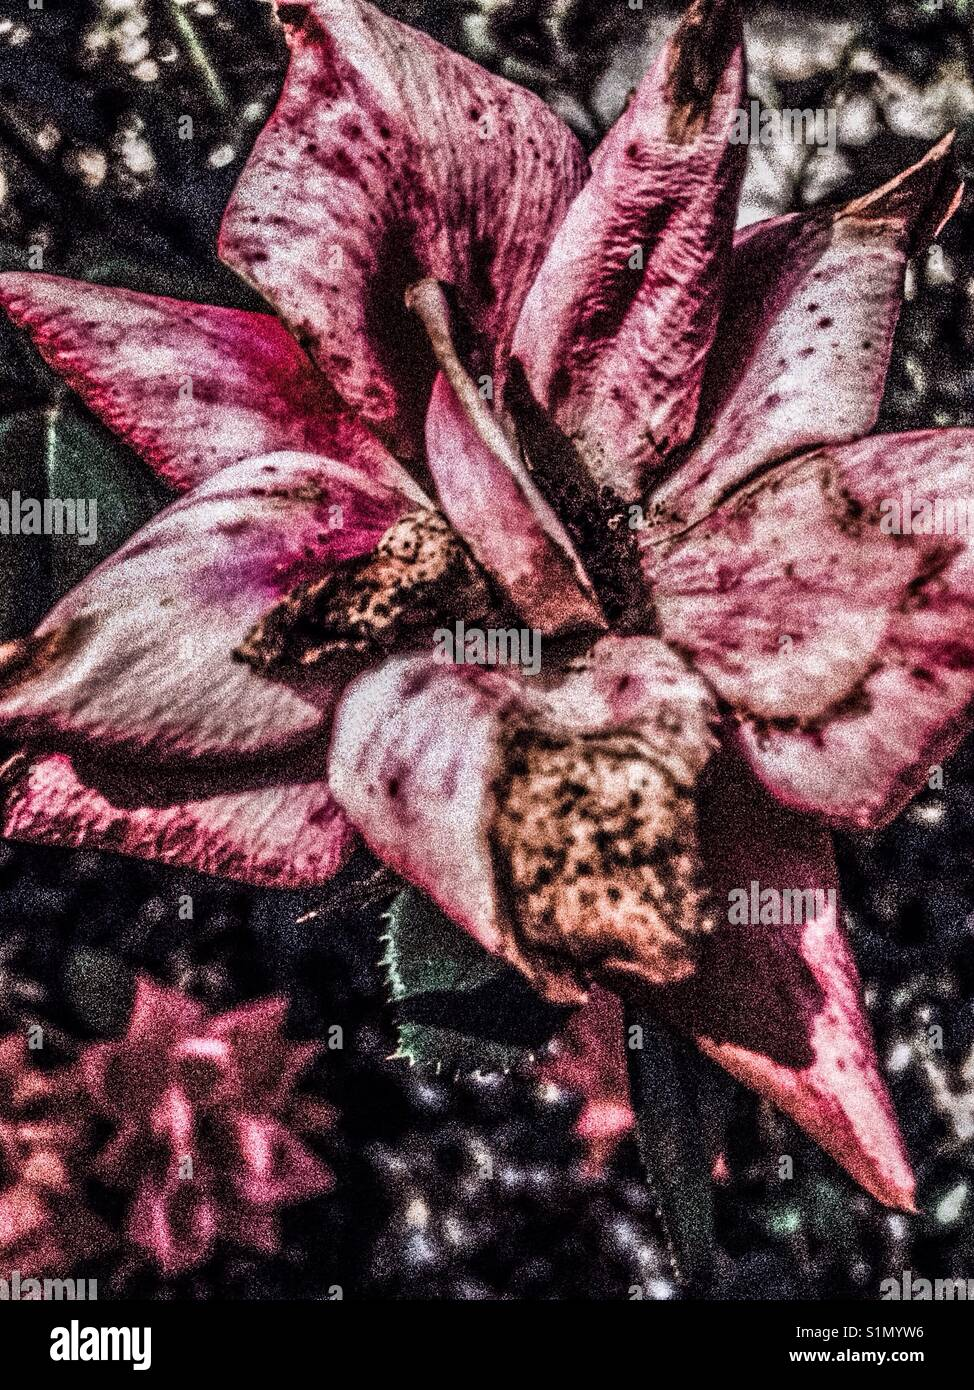 Aging beauty- pink faded, flawed rose - Stock Image